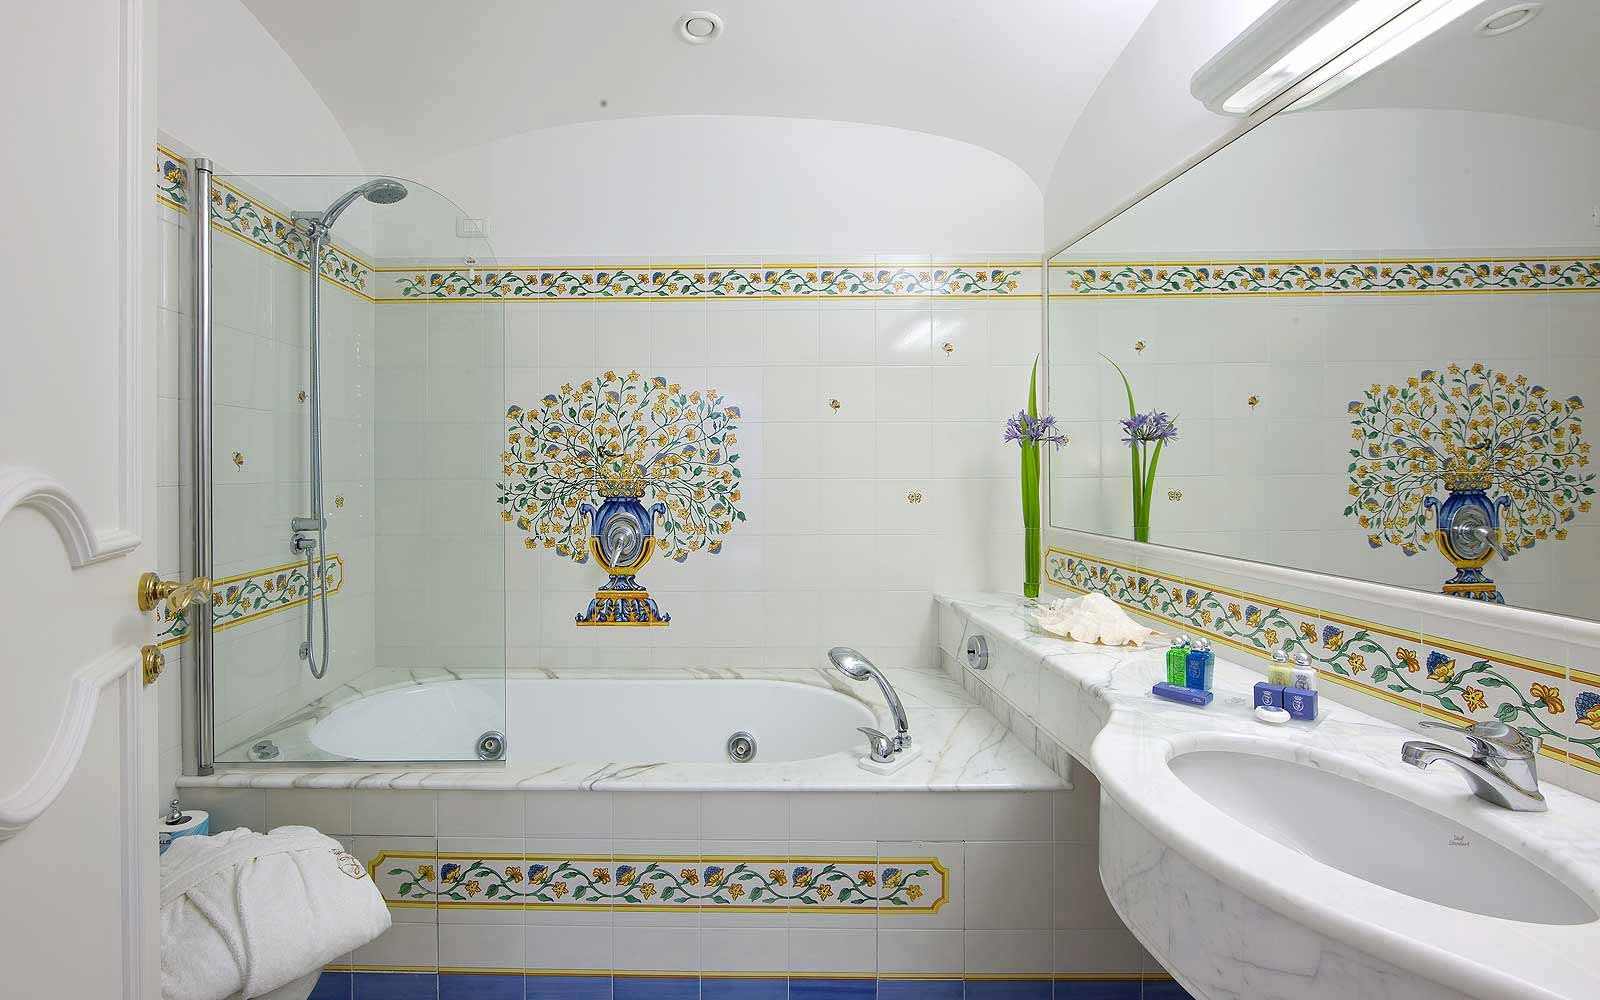 A bathroom at the Grand Hotel La Favorita